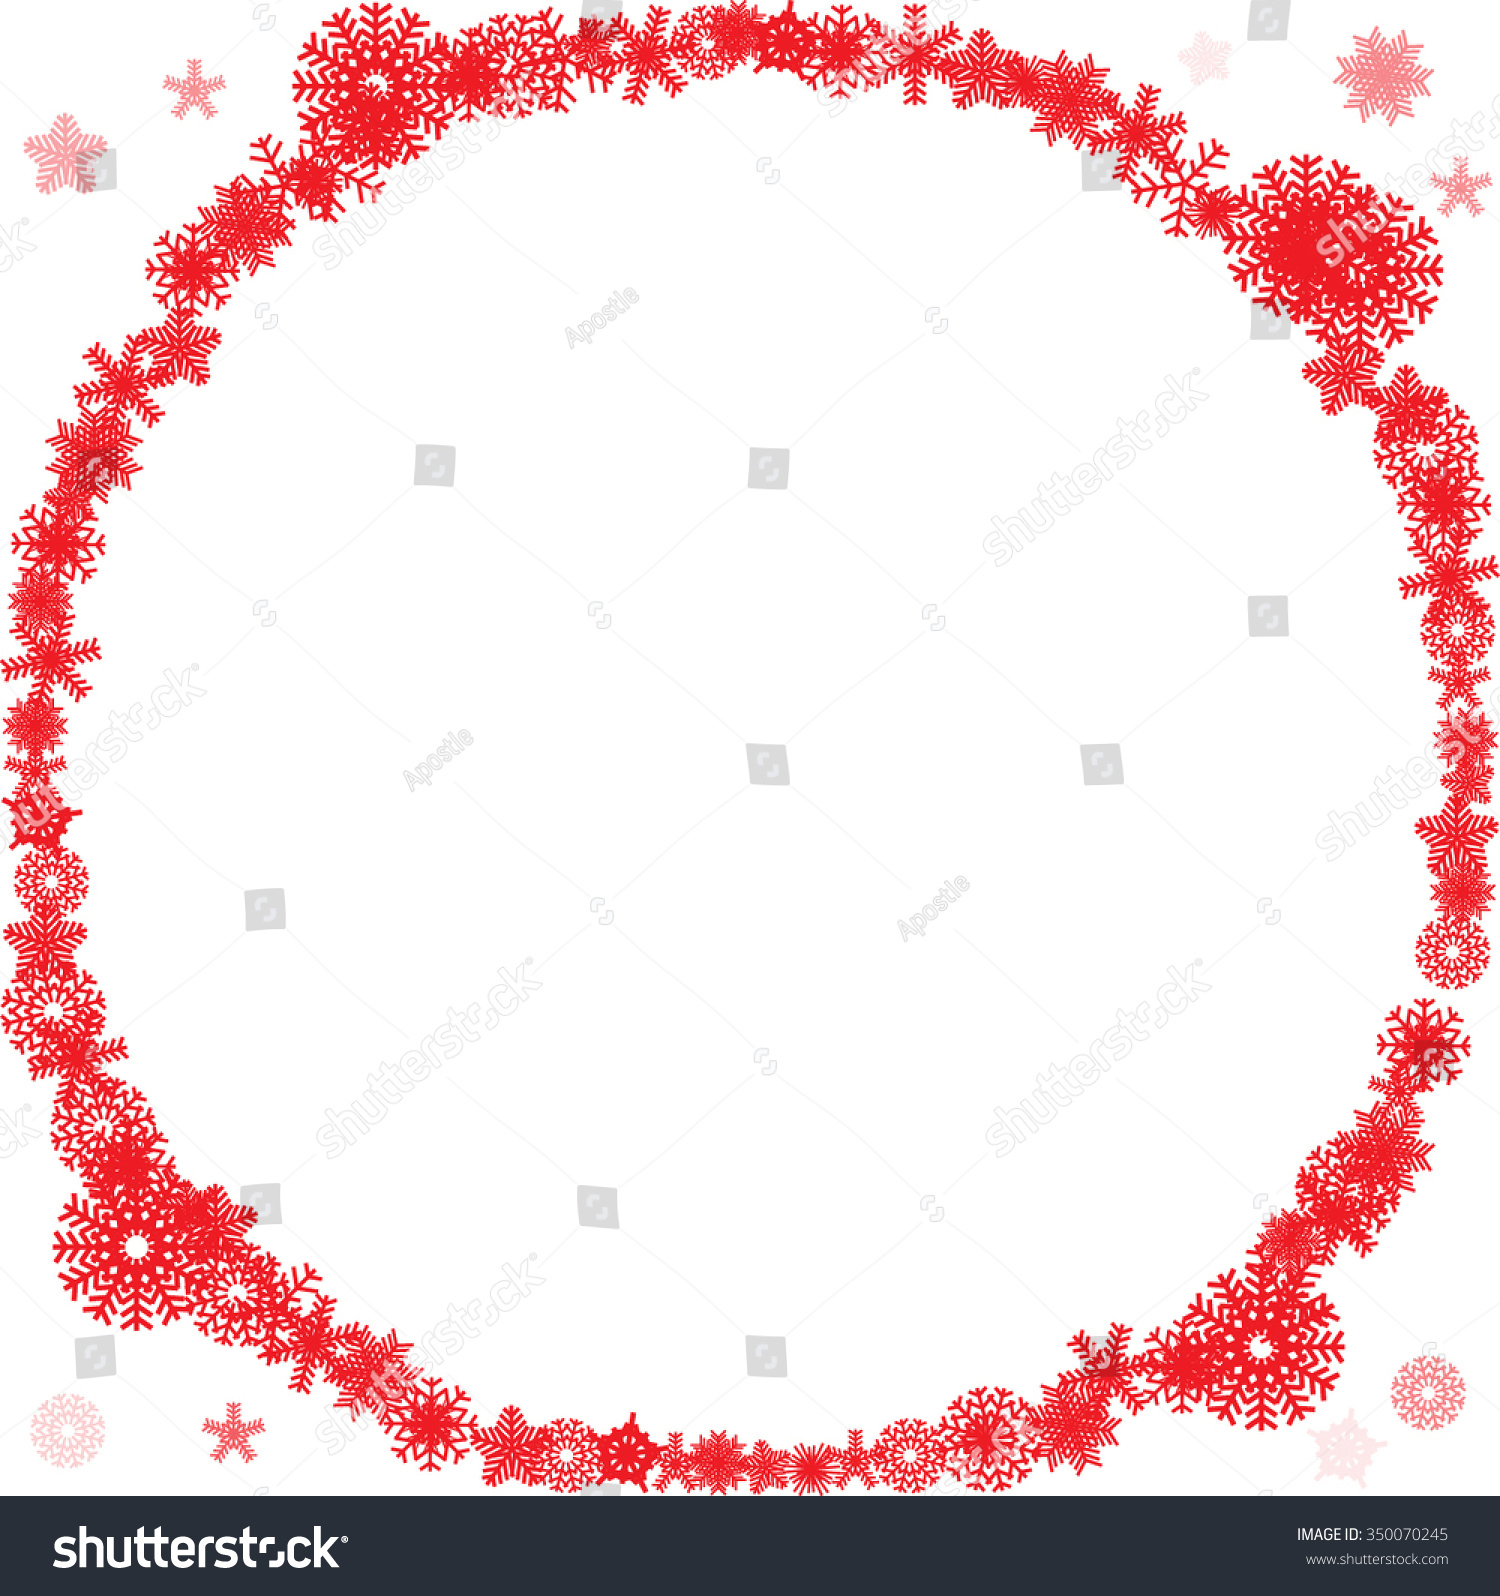 Red gift bows border with clipping path for easy background removing - Christmas Background Red And White